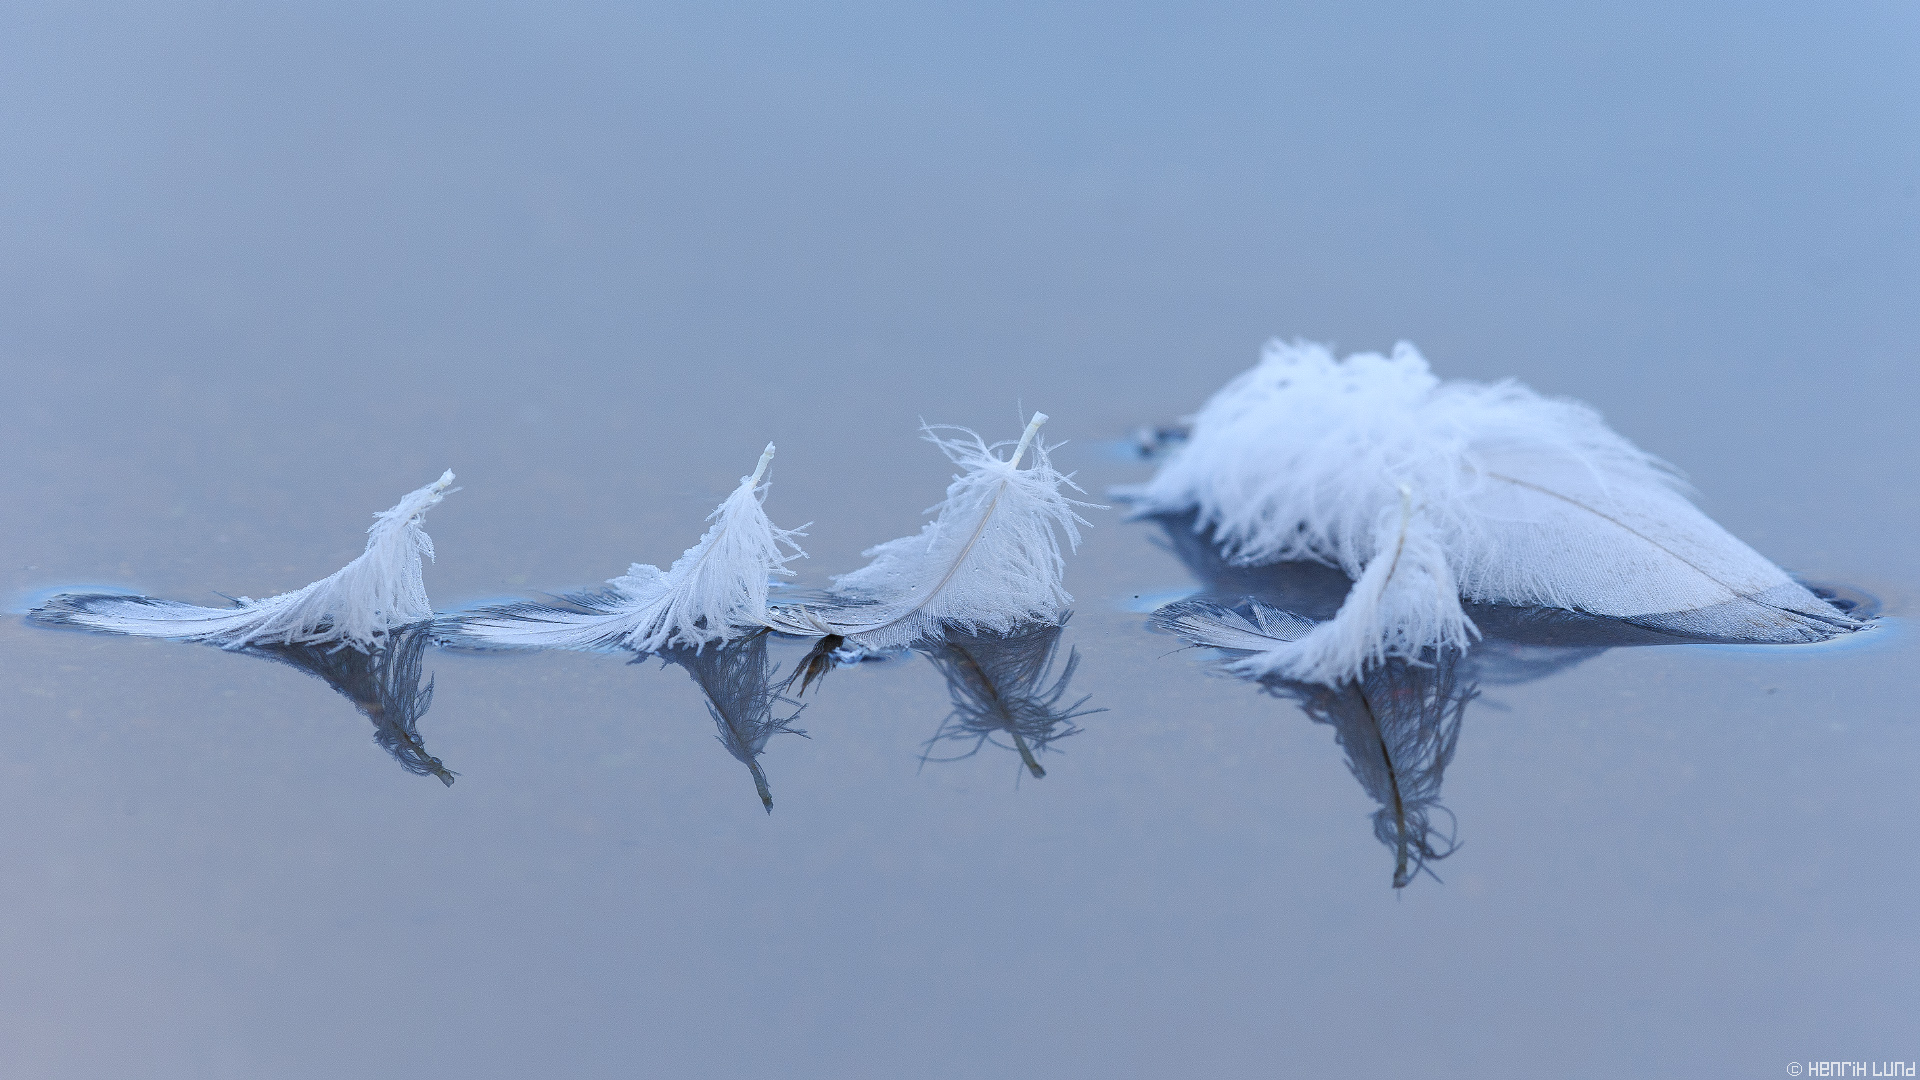 Feathers of whooper swans on the surface of the lake. Lappträsk, Finland.